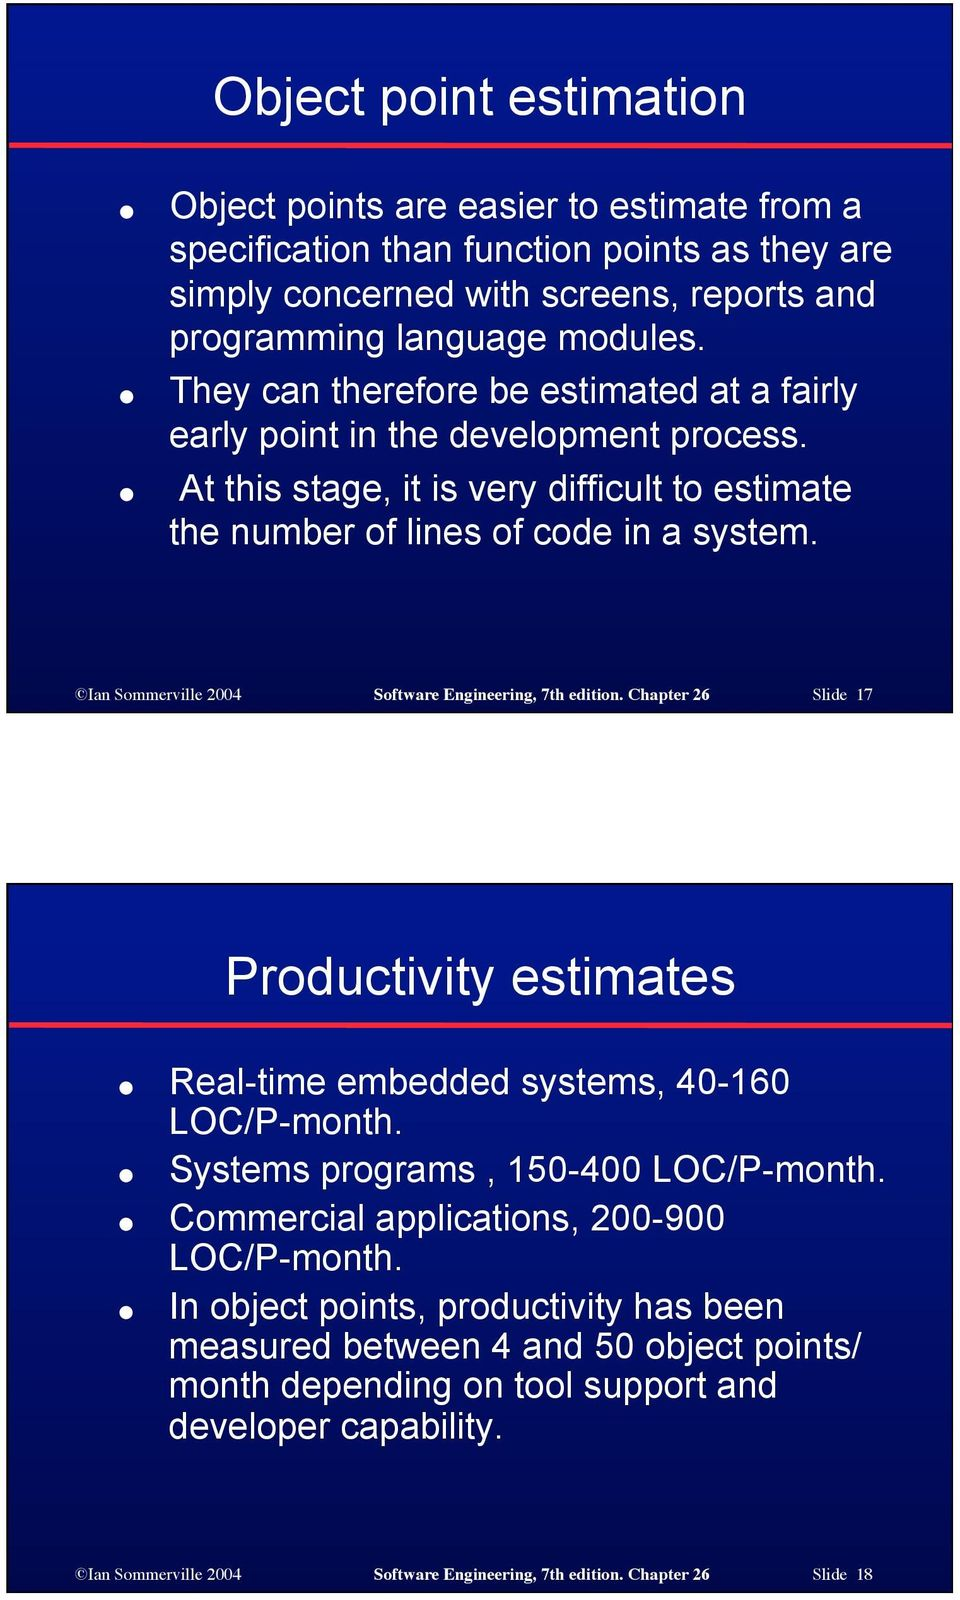 Ian Sommerville 2004 Software Engineering, 7th edition. Chapter 26 Slide 17 Productivity estimates Real-time embedded systems, 40-160 LOC/P-month. Systems programs, 150-400 LOC/P-month.